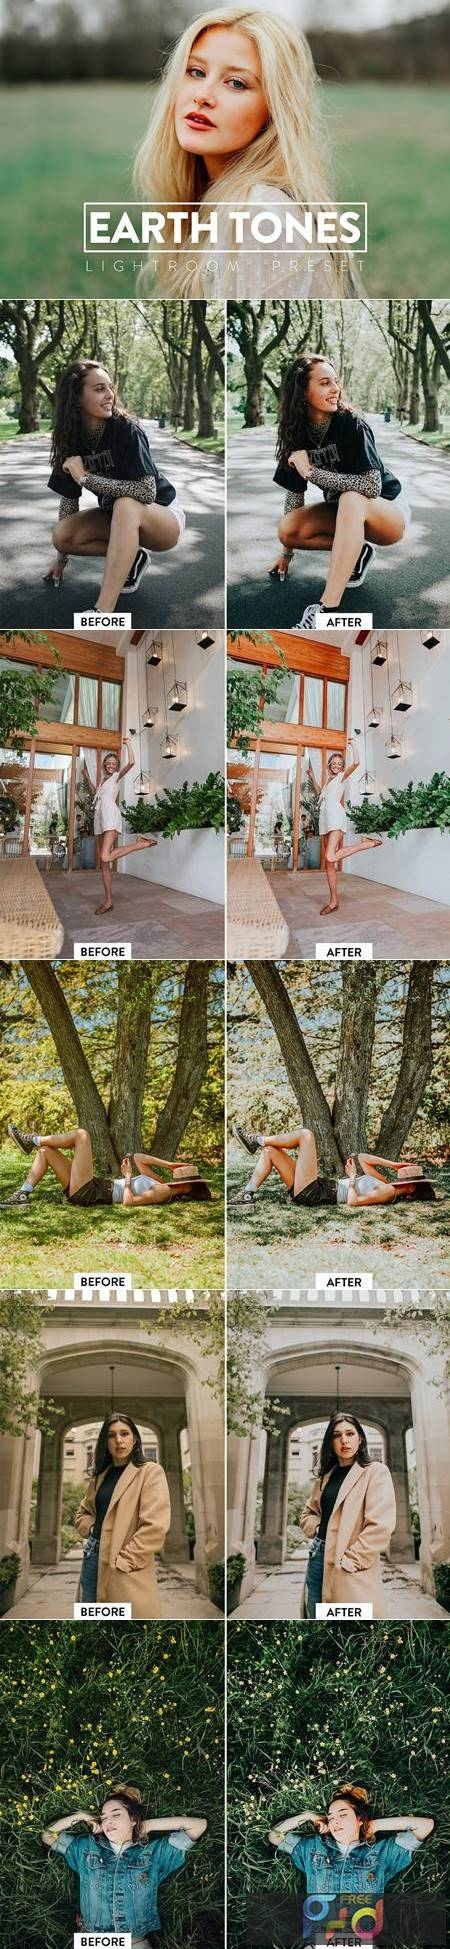 10 EARTHY TONES Lightroom Preset 5533013 1